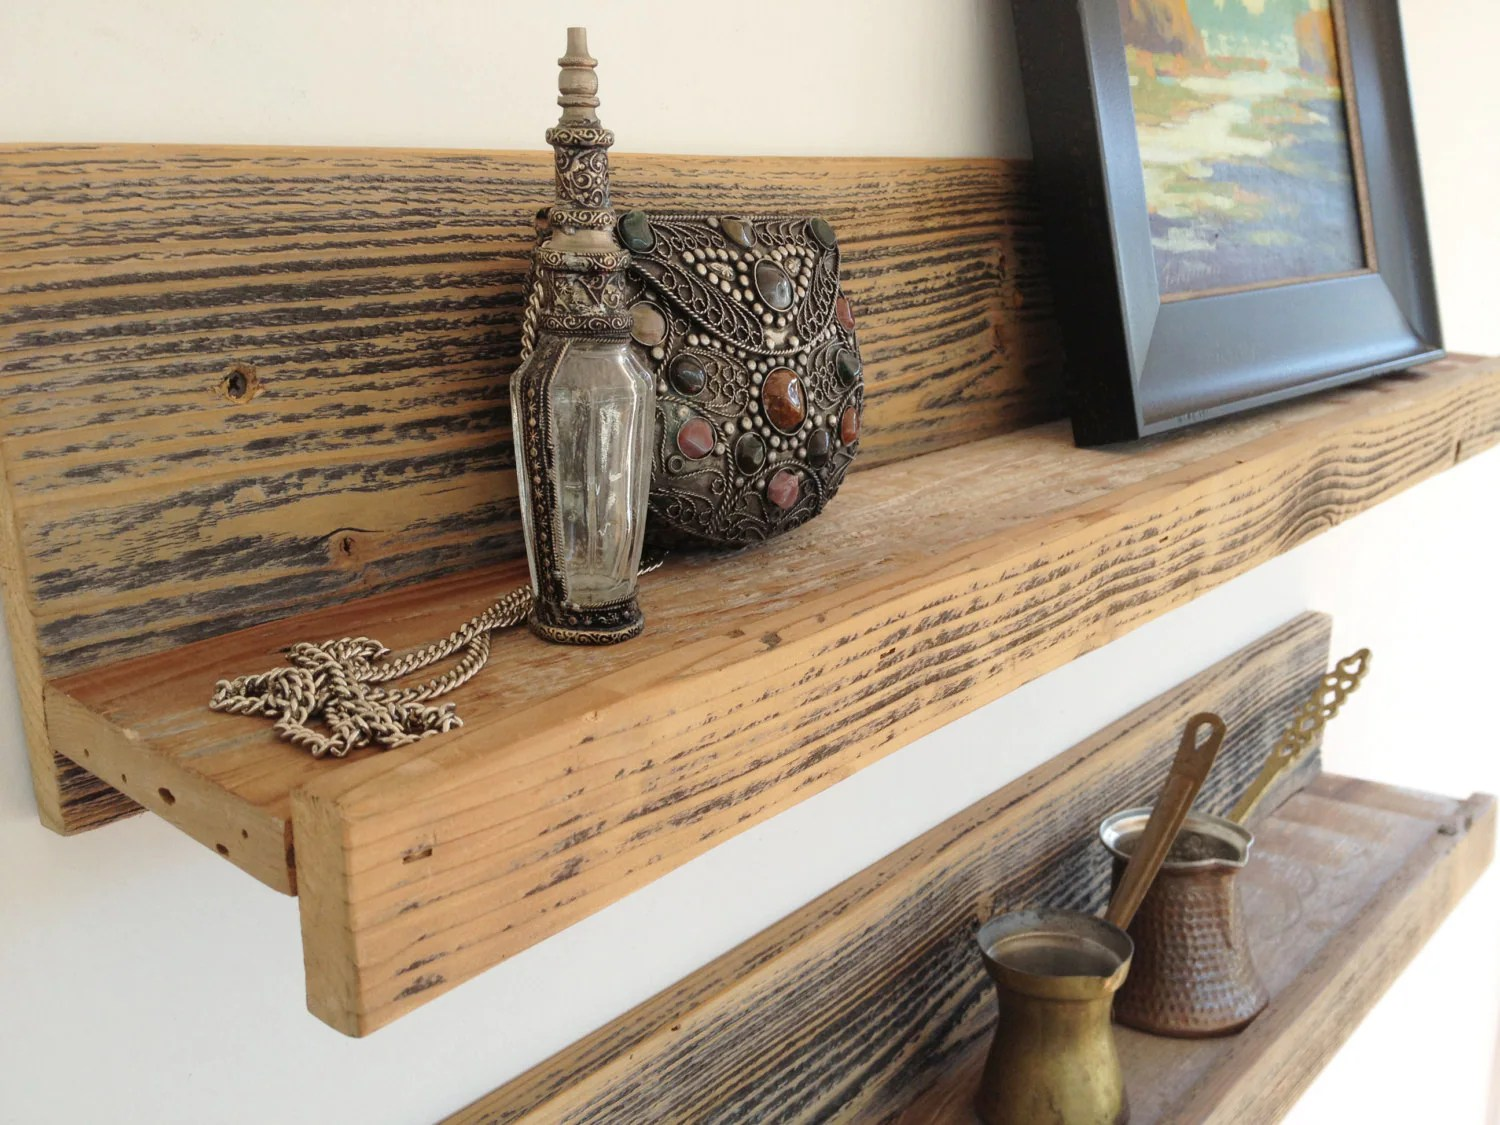 24 Inch Rustic Reclaimed Wood Shelf For Home Studio Office